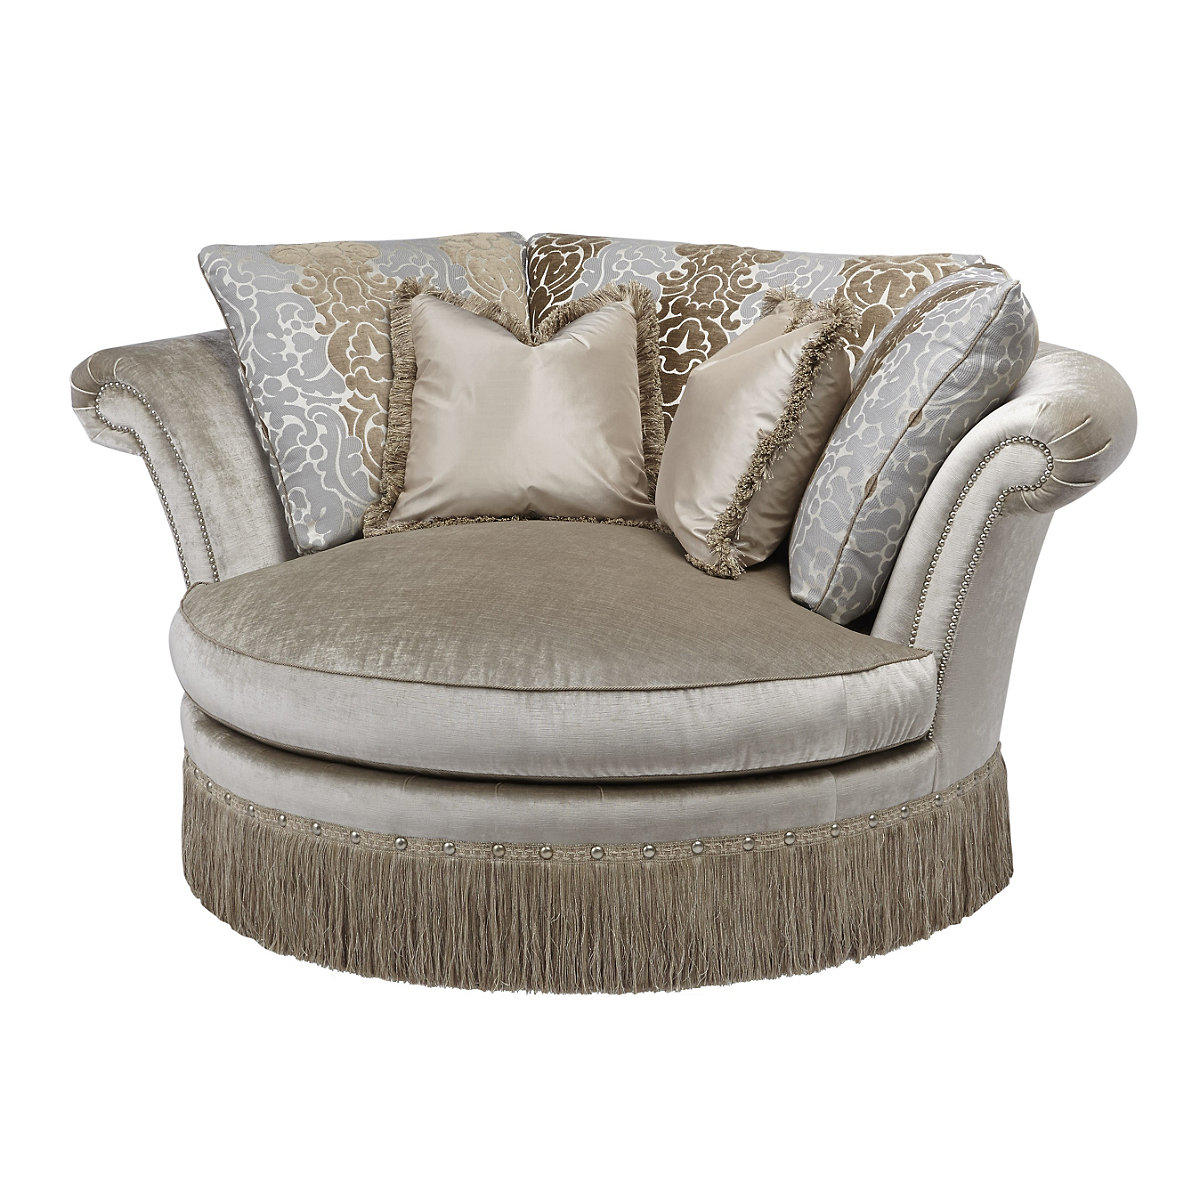 rosamund cuddle chair from frontgate home decorateness